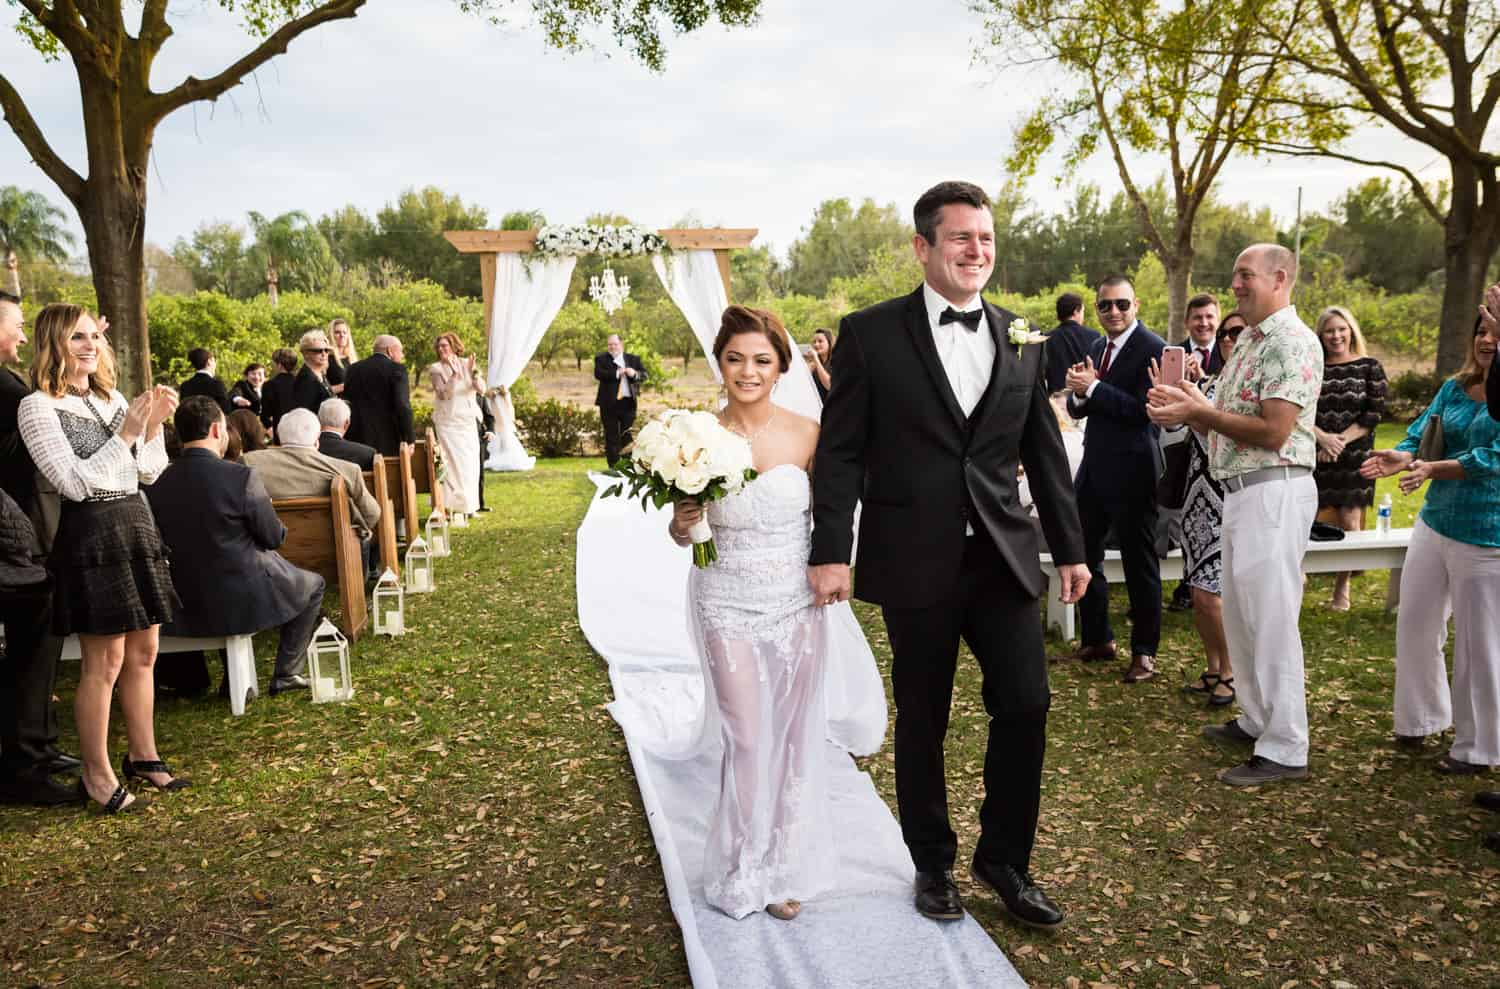 Bride and groom walking down aisle after ceremony for an article on wedding cost cutting tips